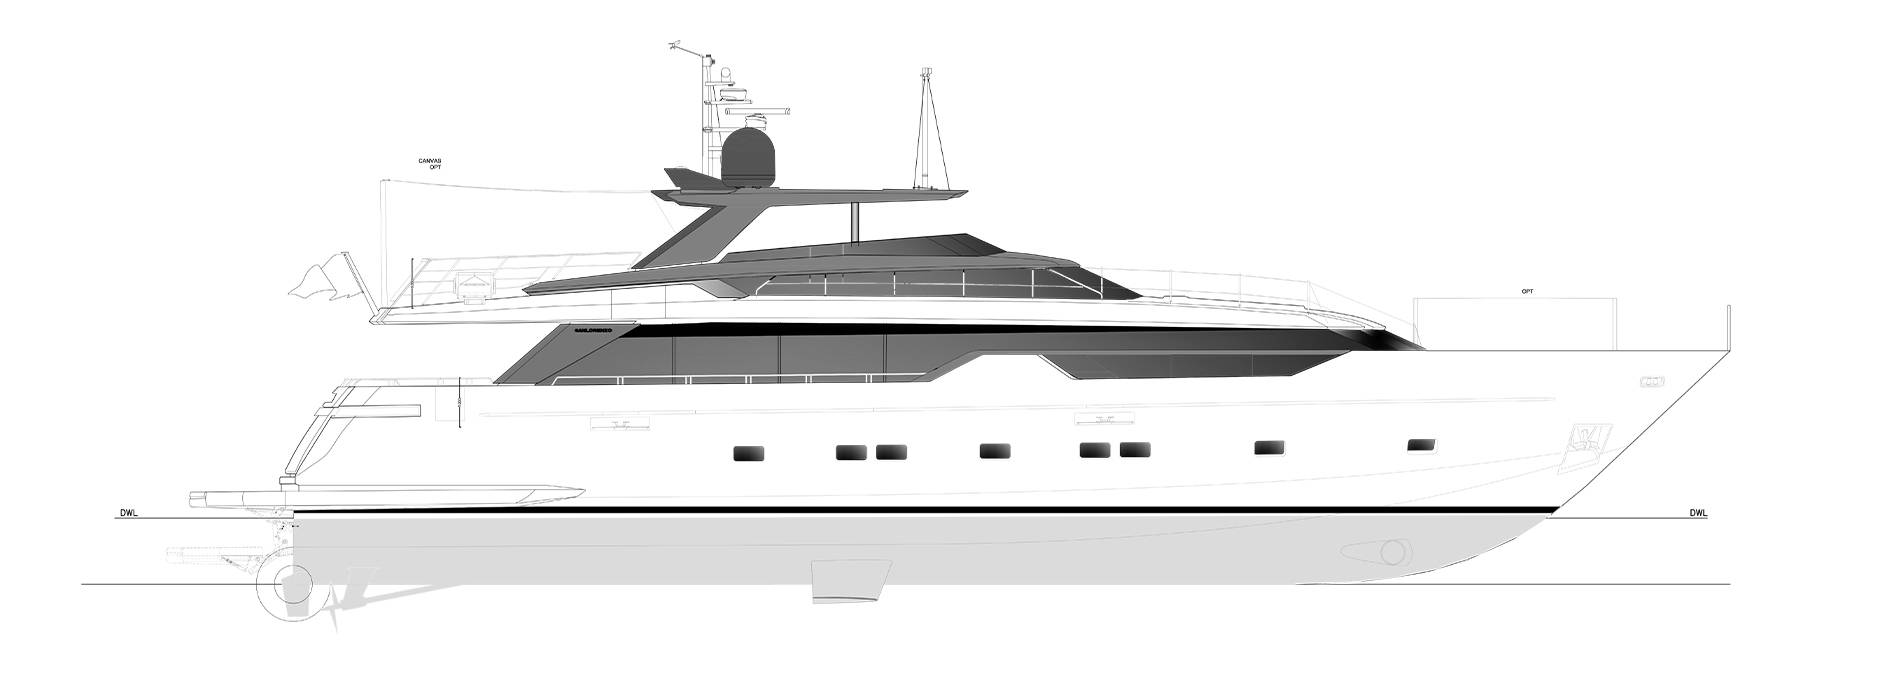 Sanlorenzo Yachts SL102A-746 under offer Profile